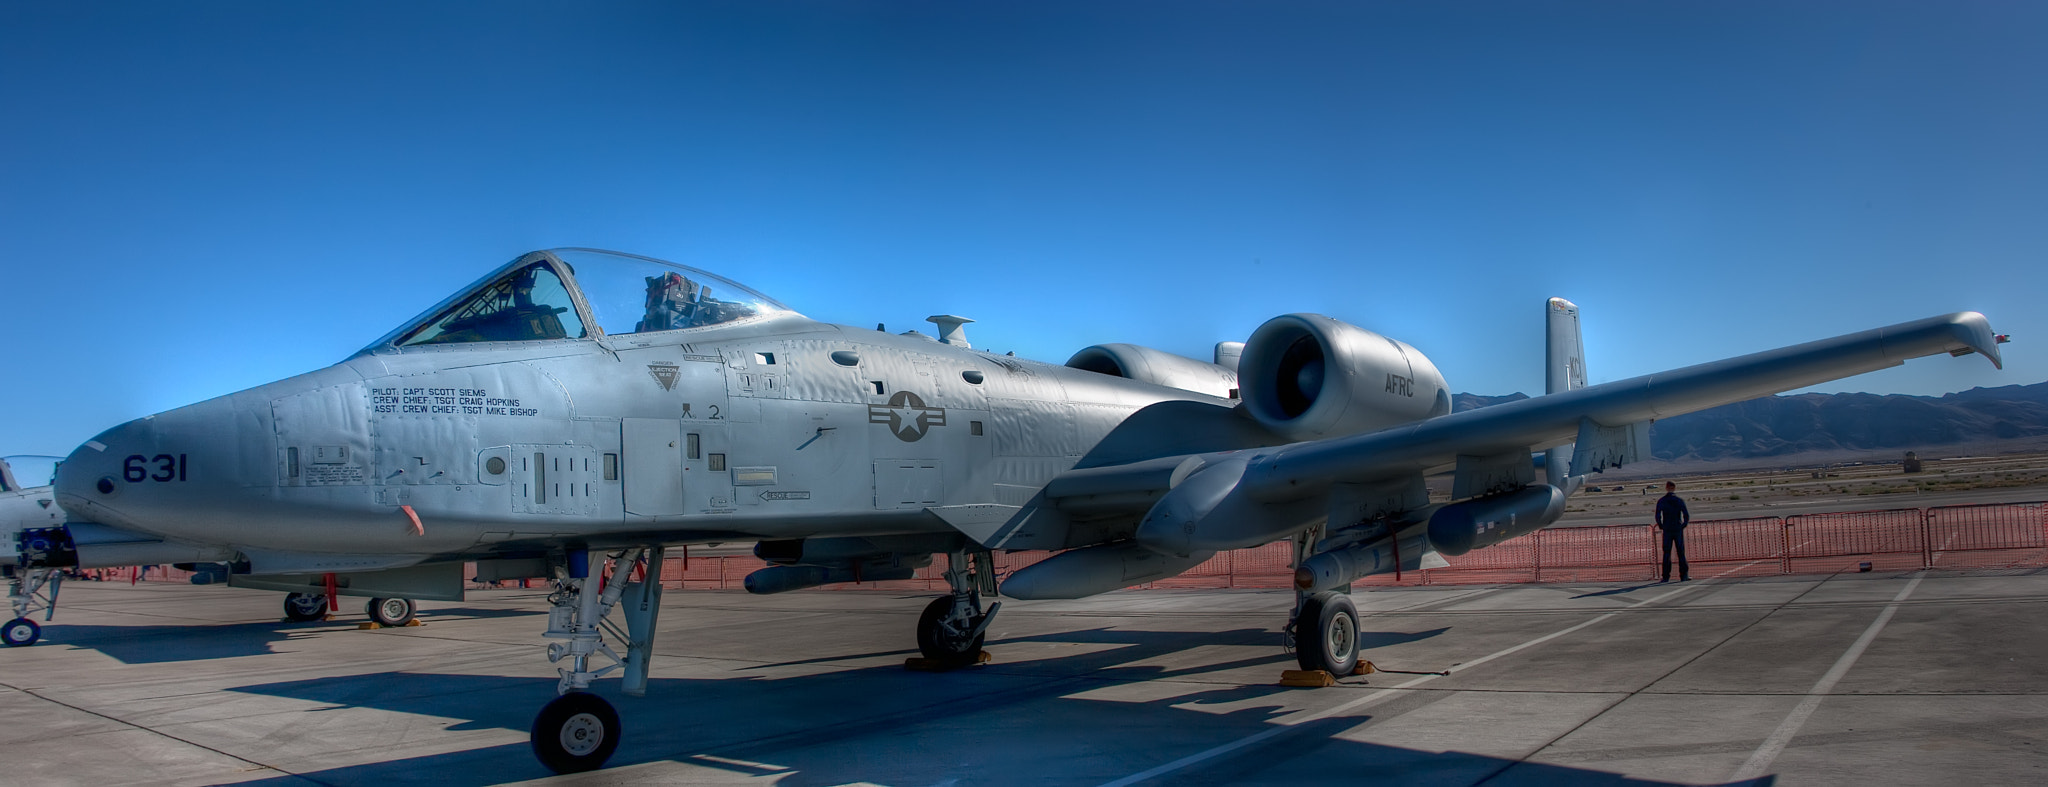 Photograph A-10 Thunderbolt (Warthog) by Brad Denny on 500px